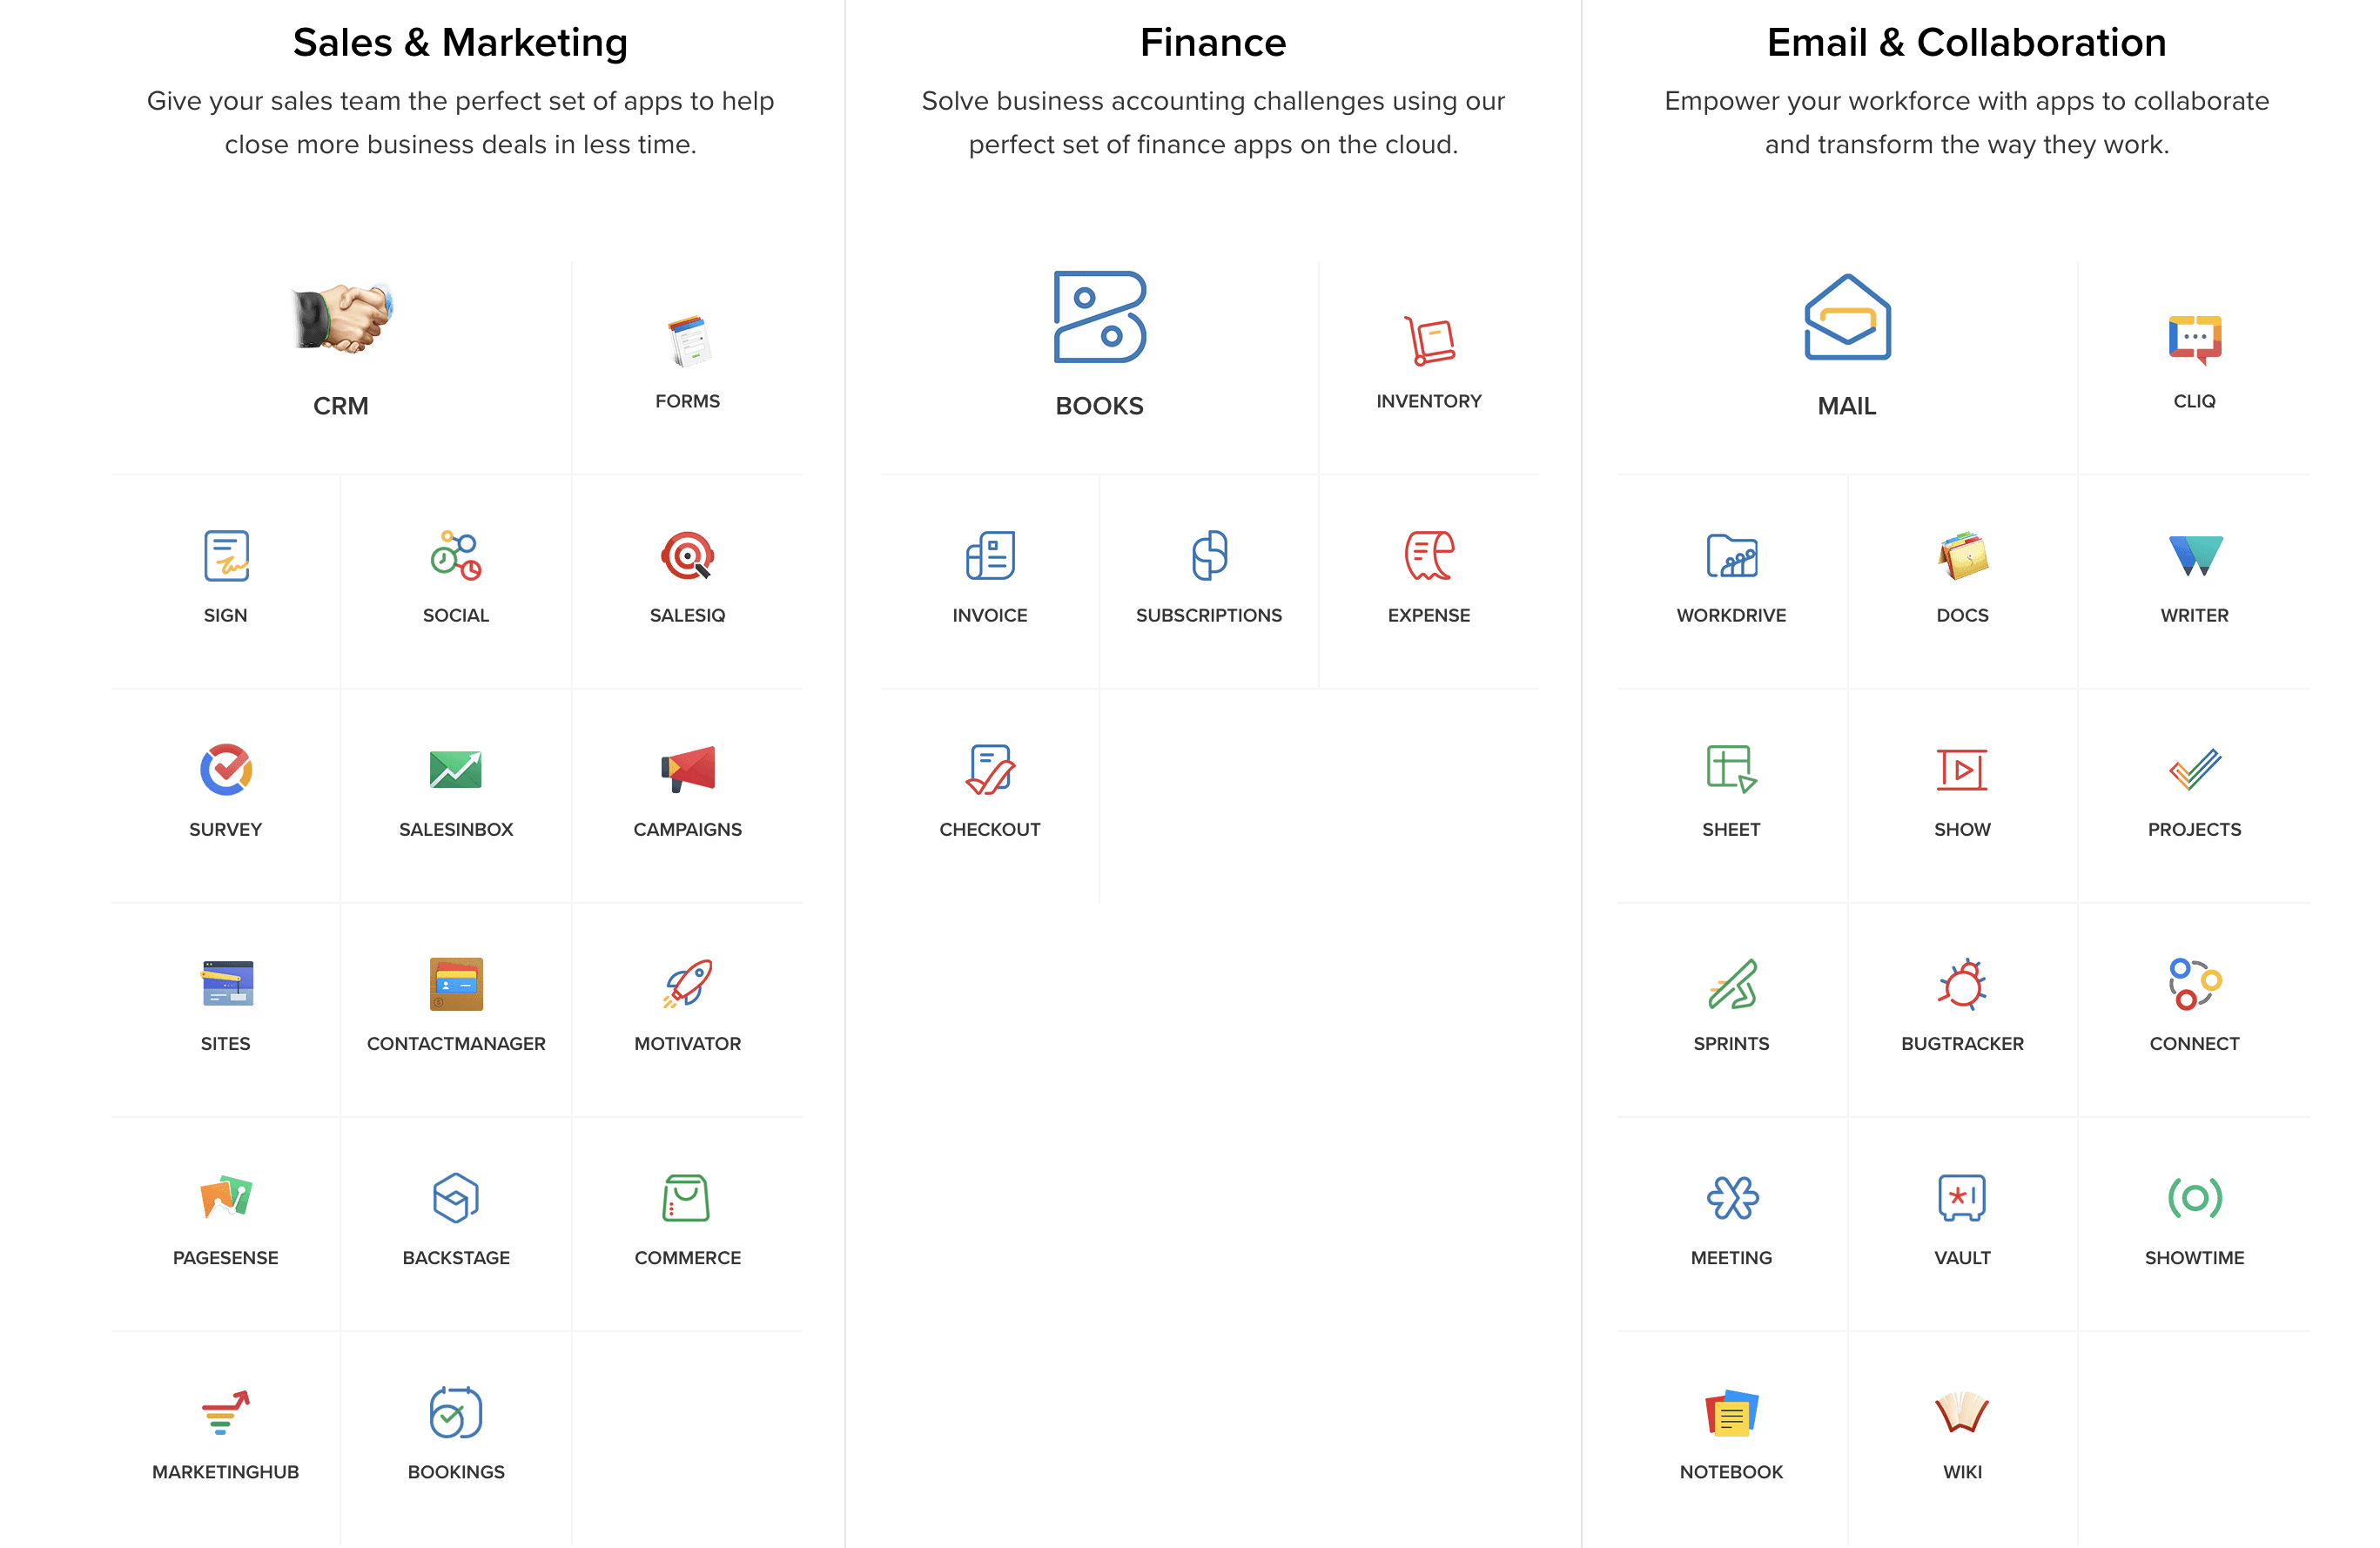 Apps in Sales & Marketing, Finance, and Email & Collaboration.